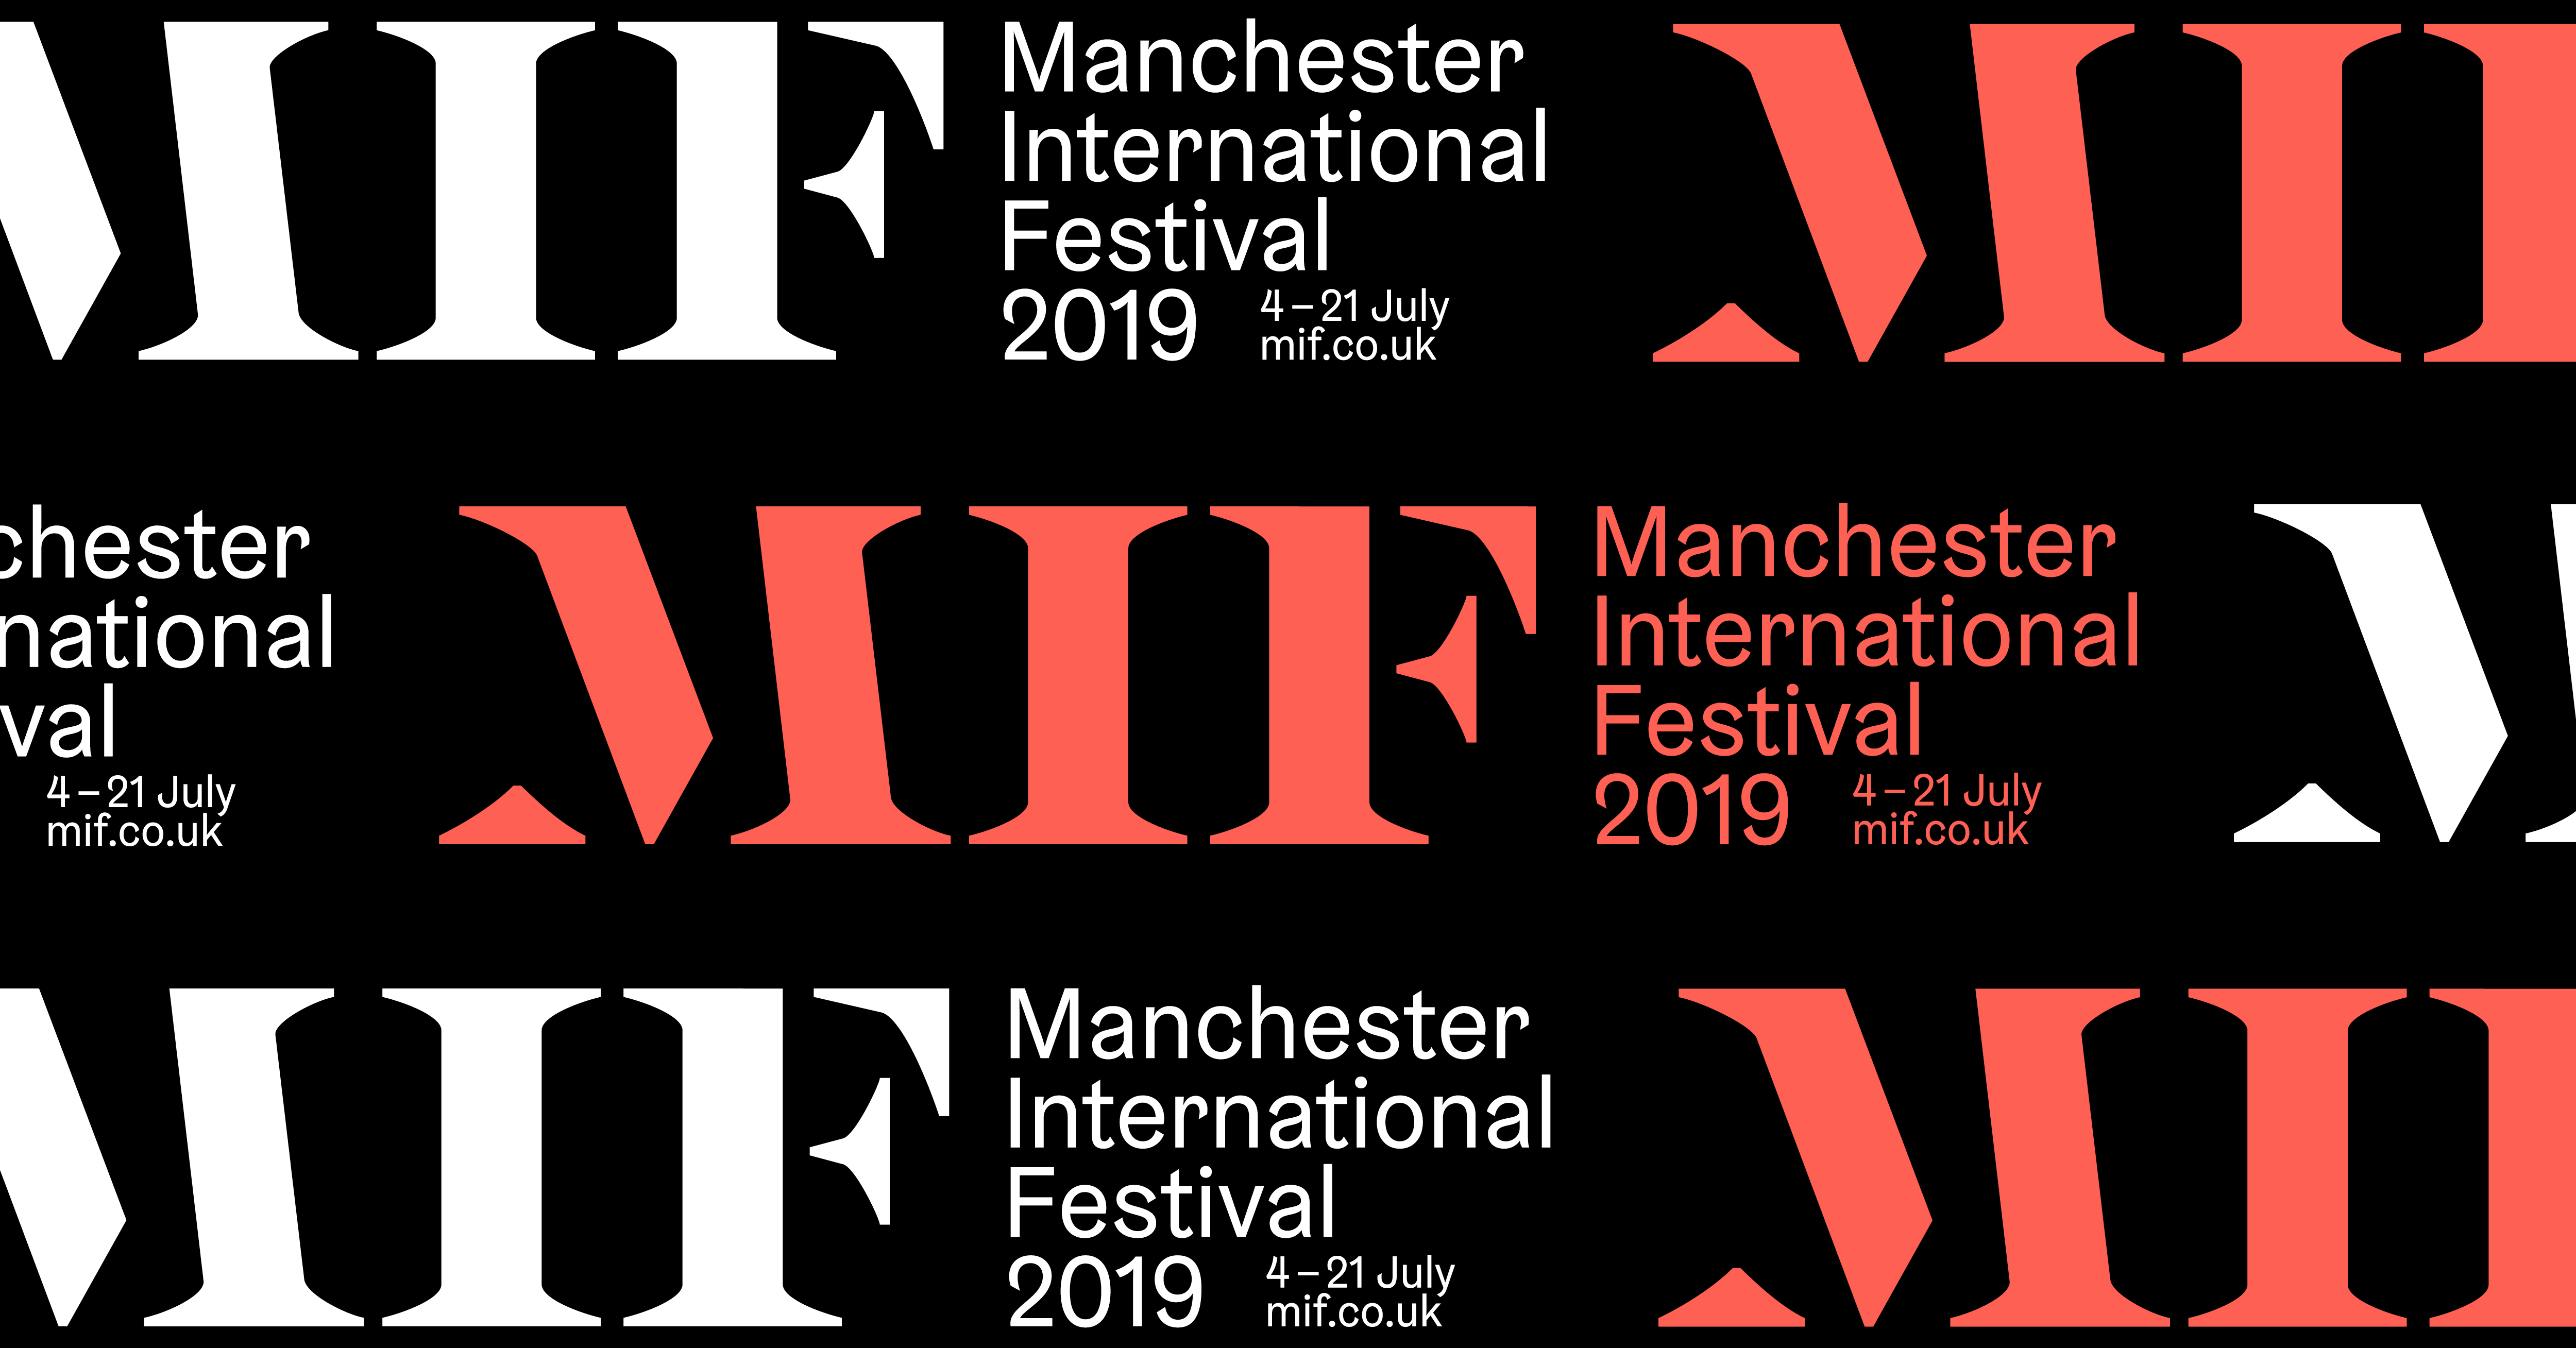 PREVIEW: Manchester International Festival